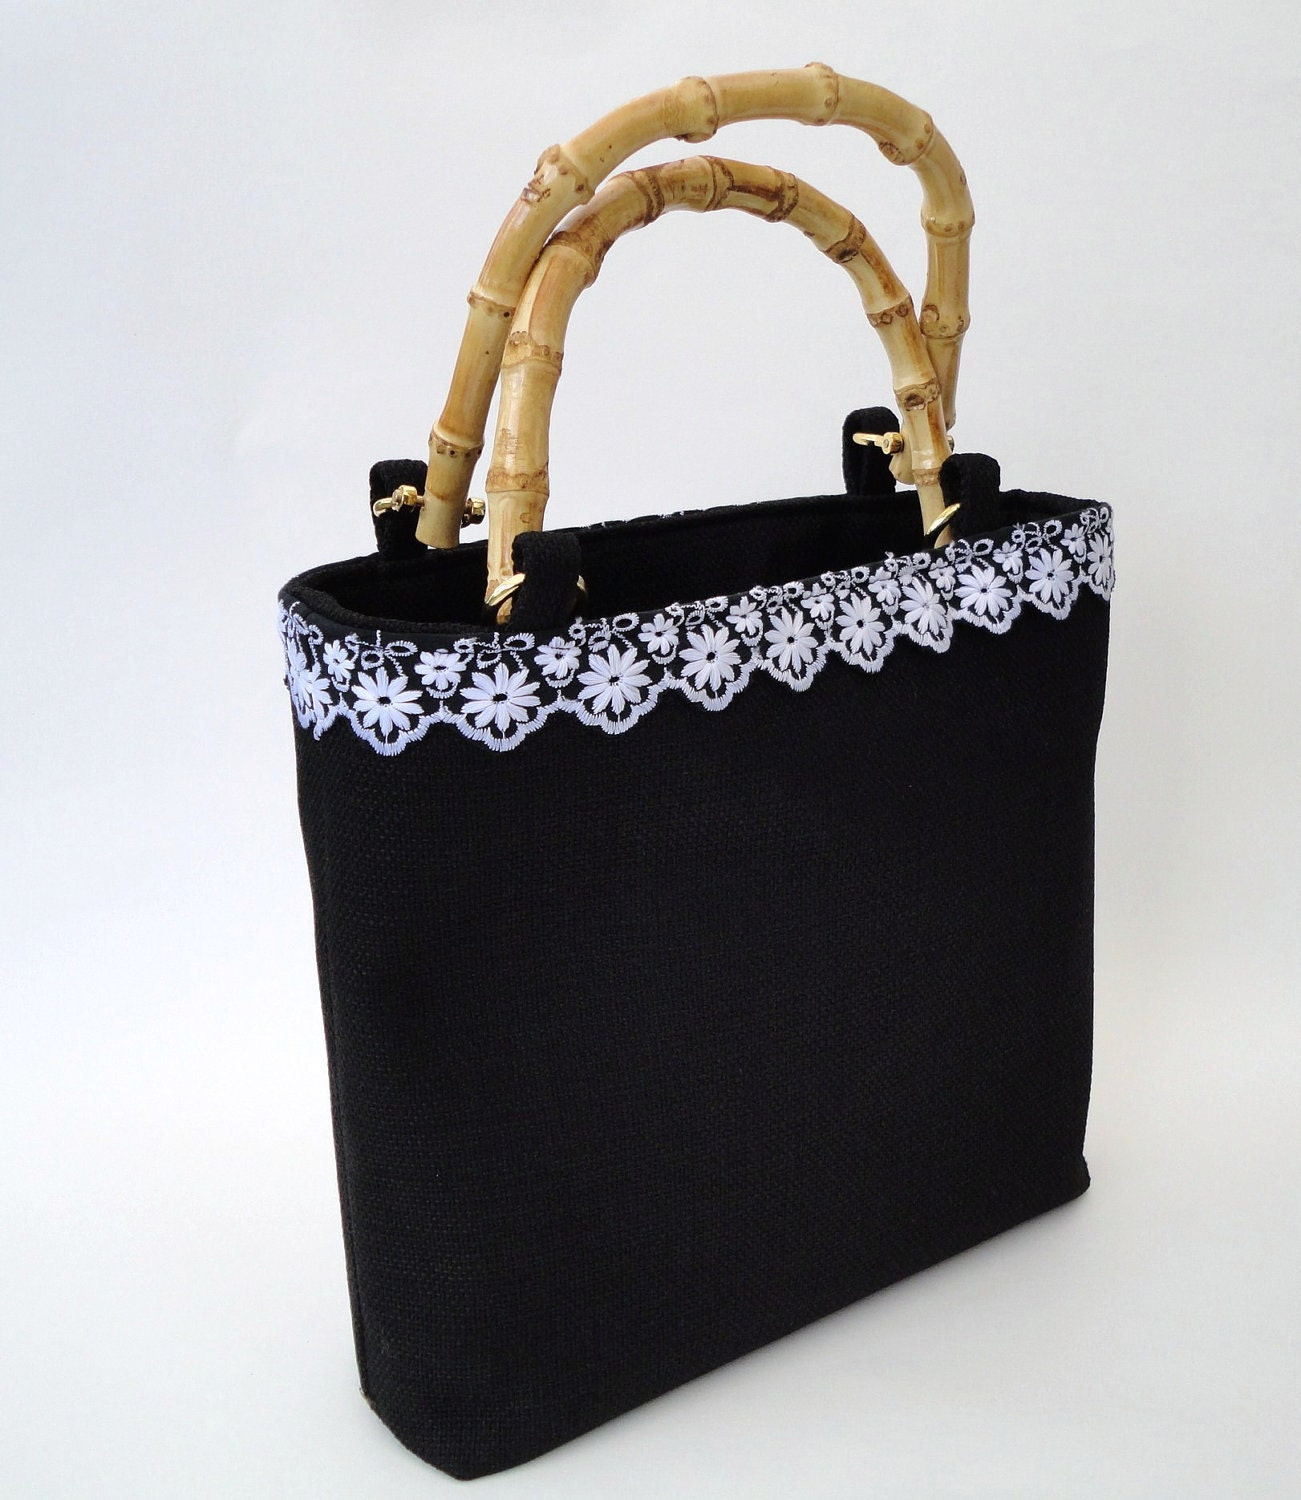 Handbag with Bamboo Handles - Ebony and Ivory for Sophie